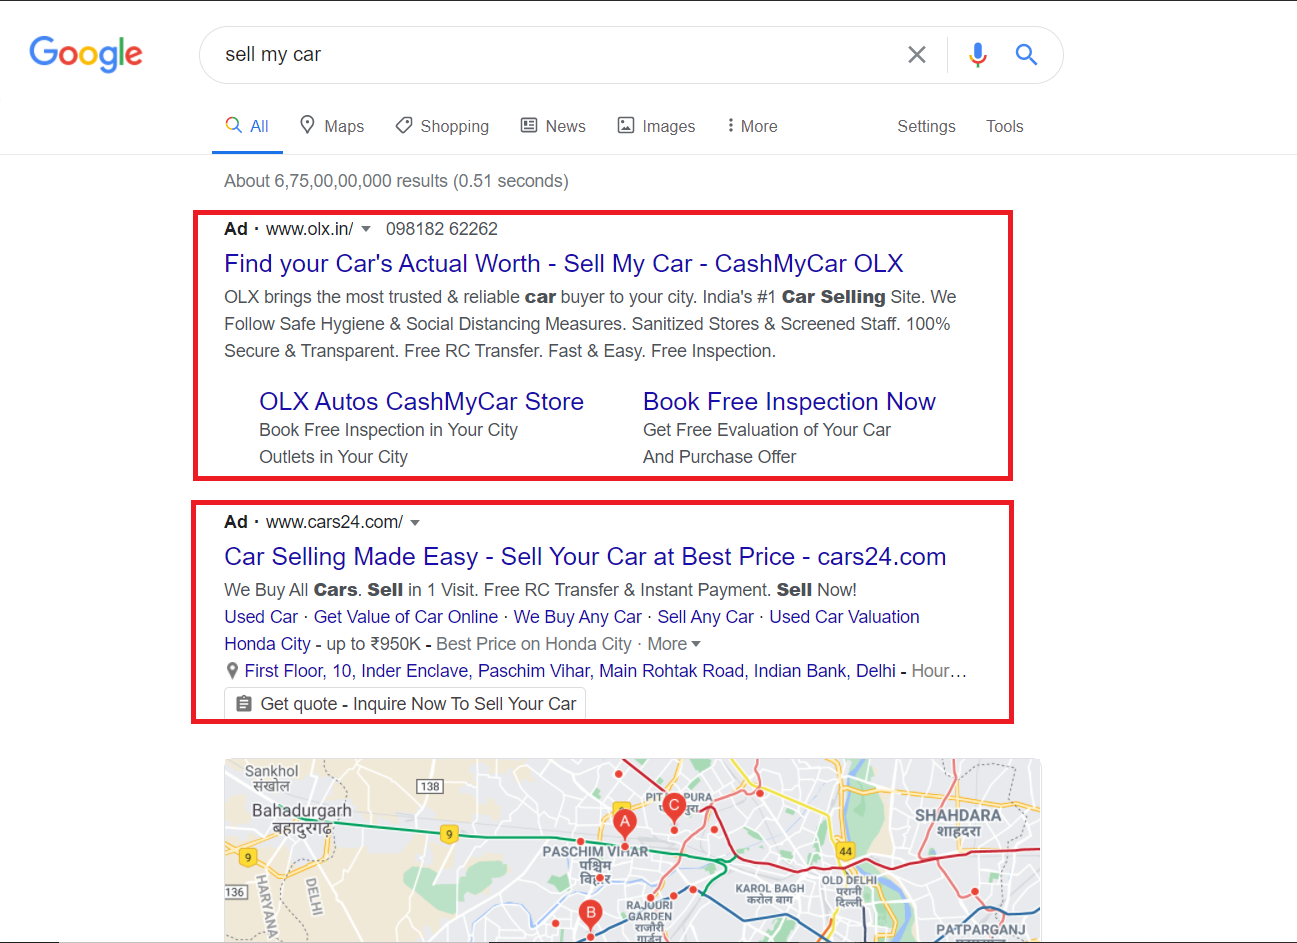 How Google search ads appear in SERP